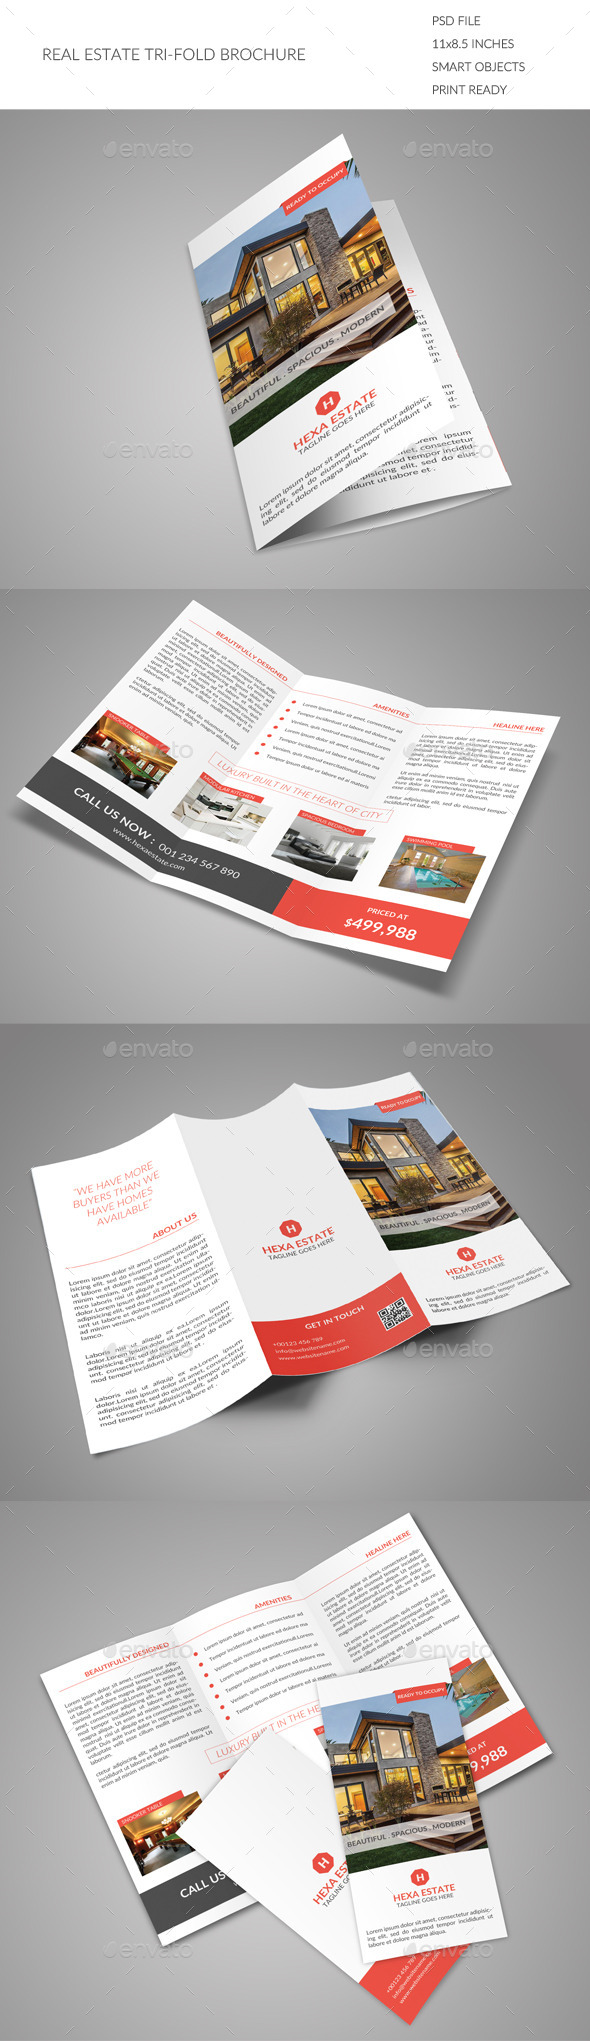 GraphicRiver Real Estate Tri-fold Brochure 9128224